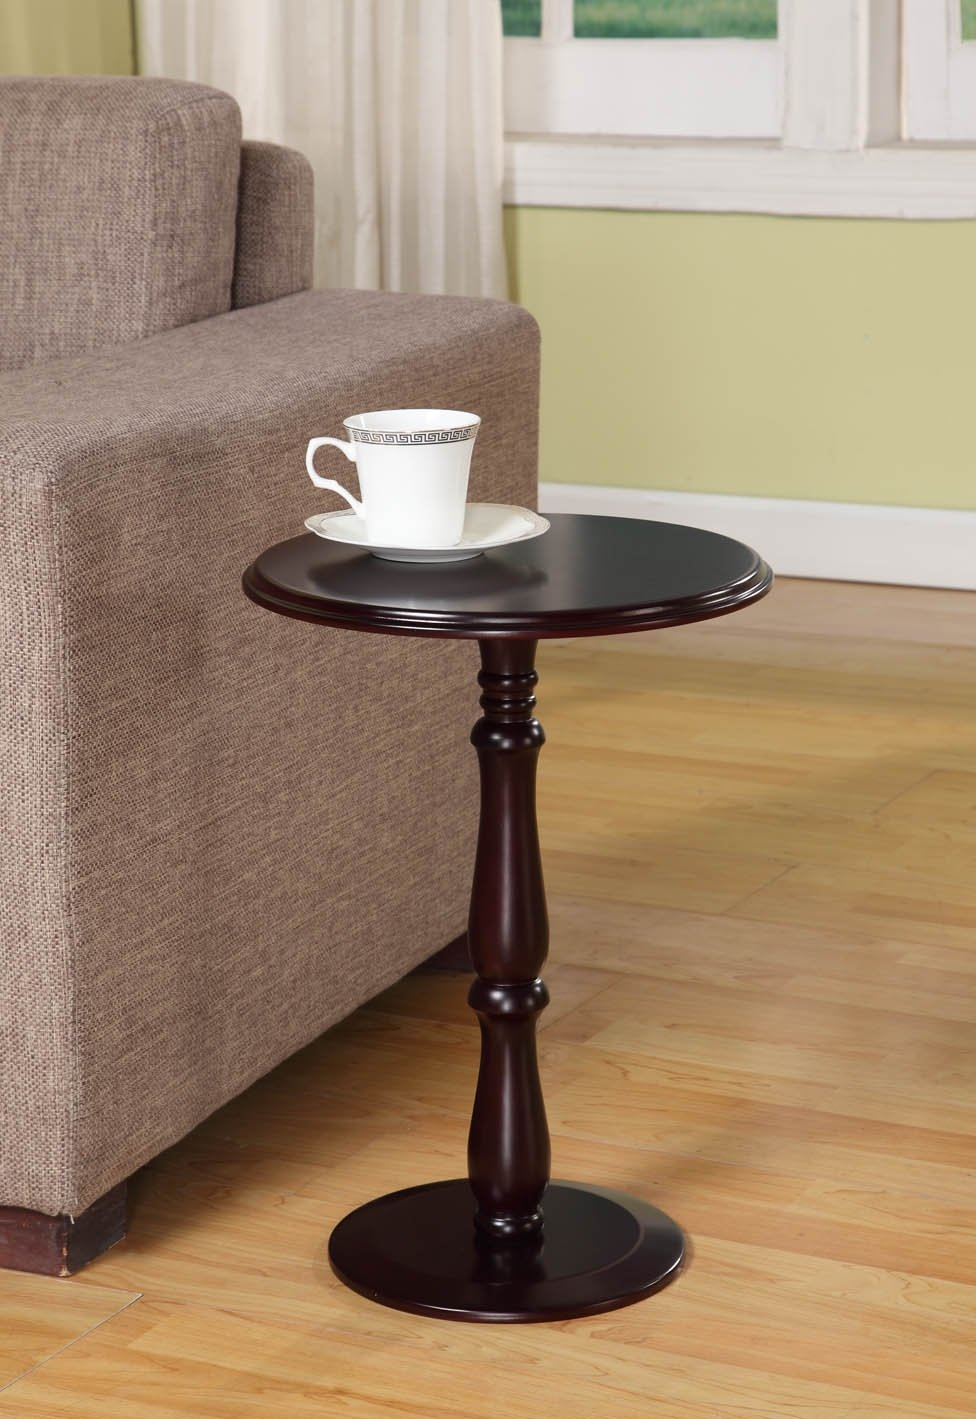 small round end table Amazon.com: Kings Brand Furniture   Dark Cherry Finish Wood Plant  small round end table